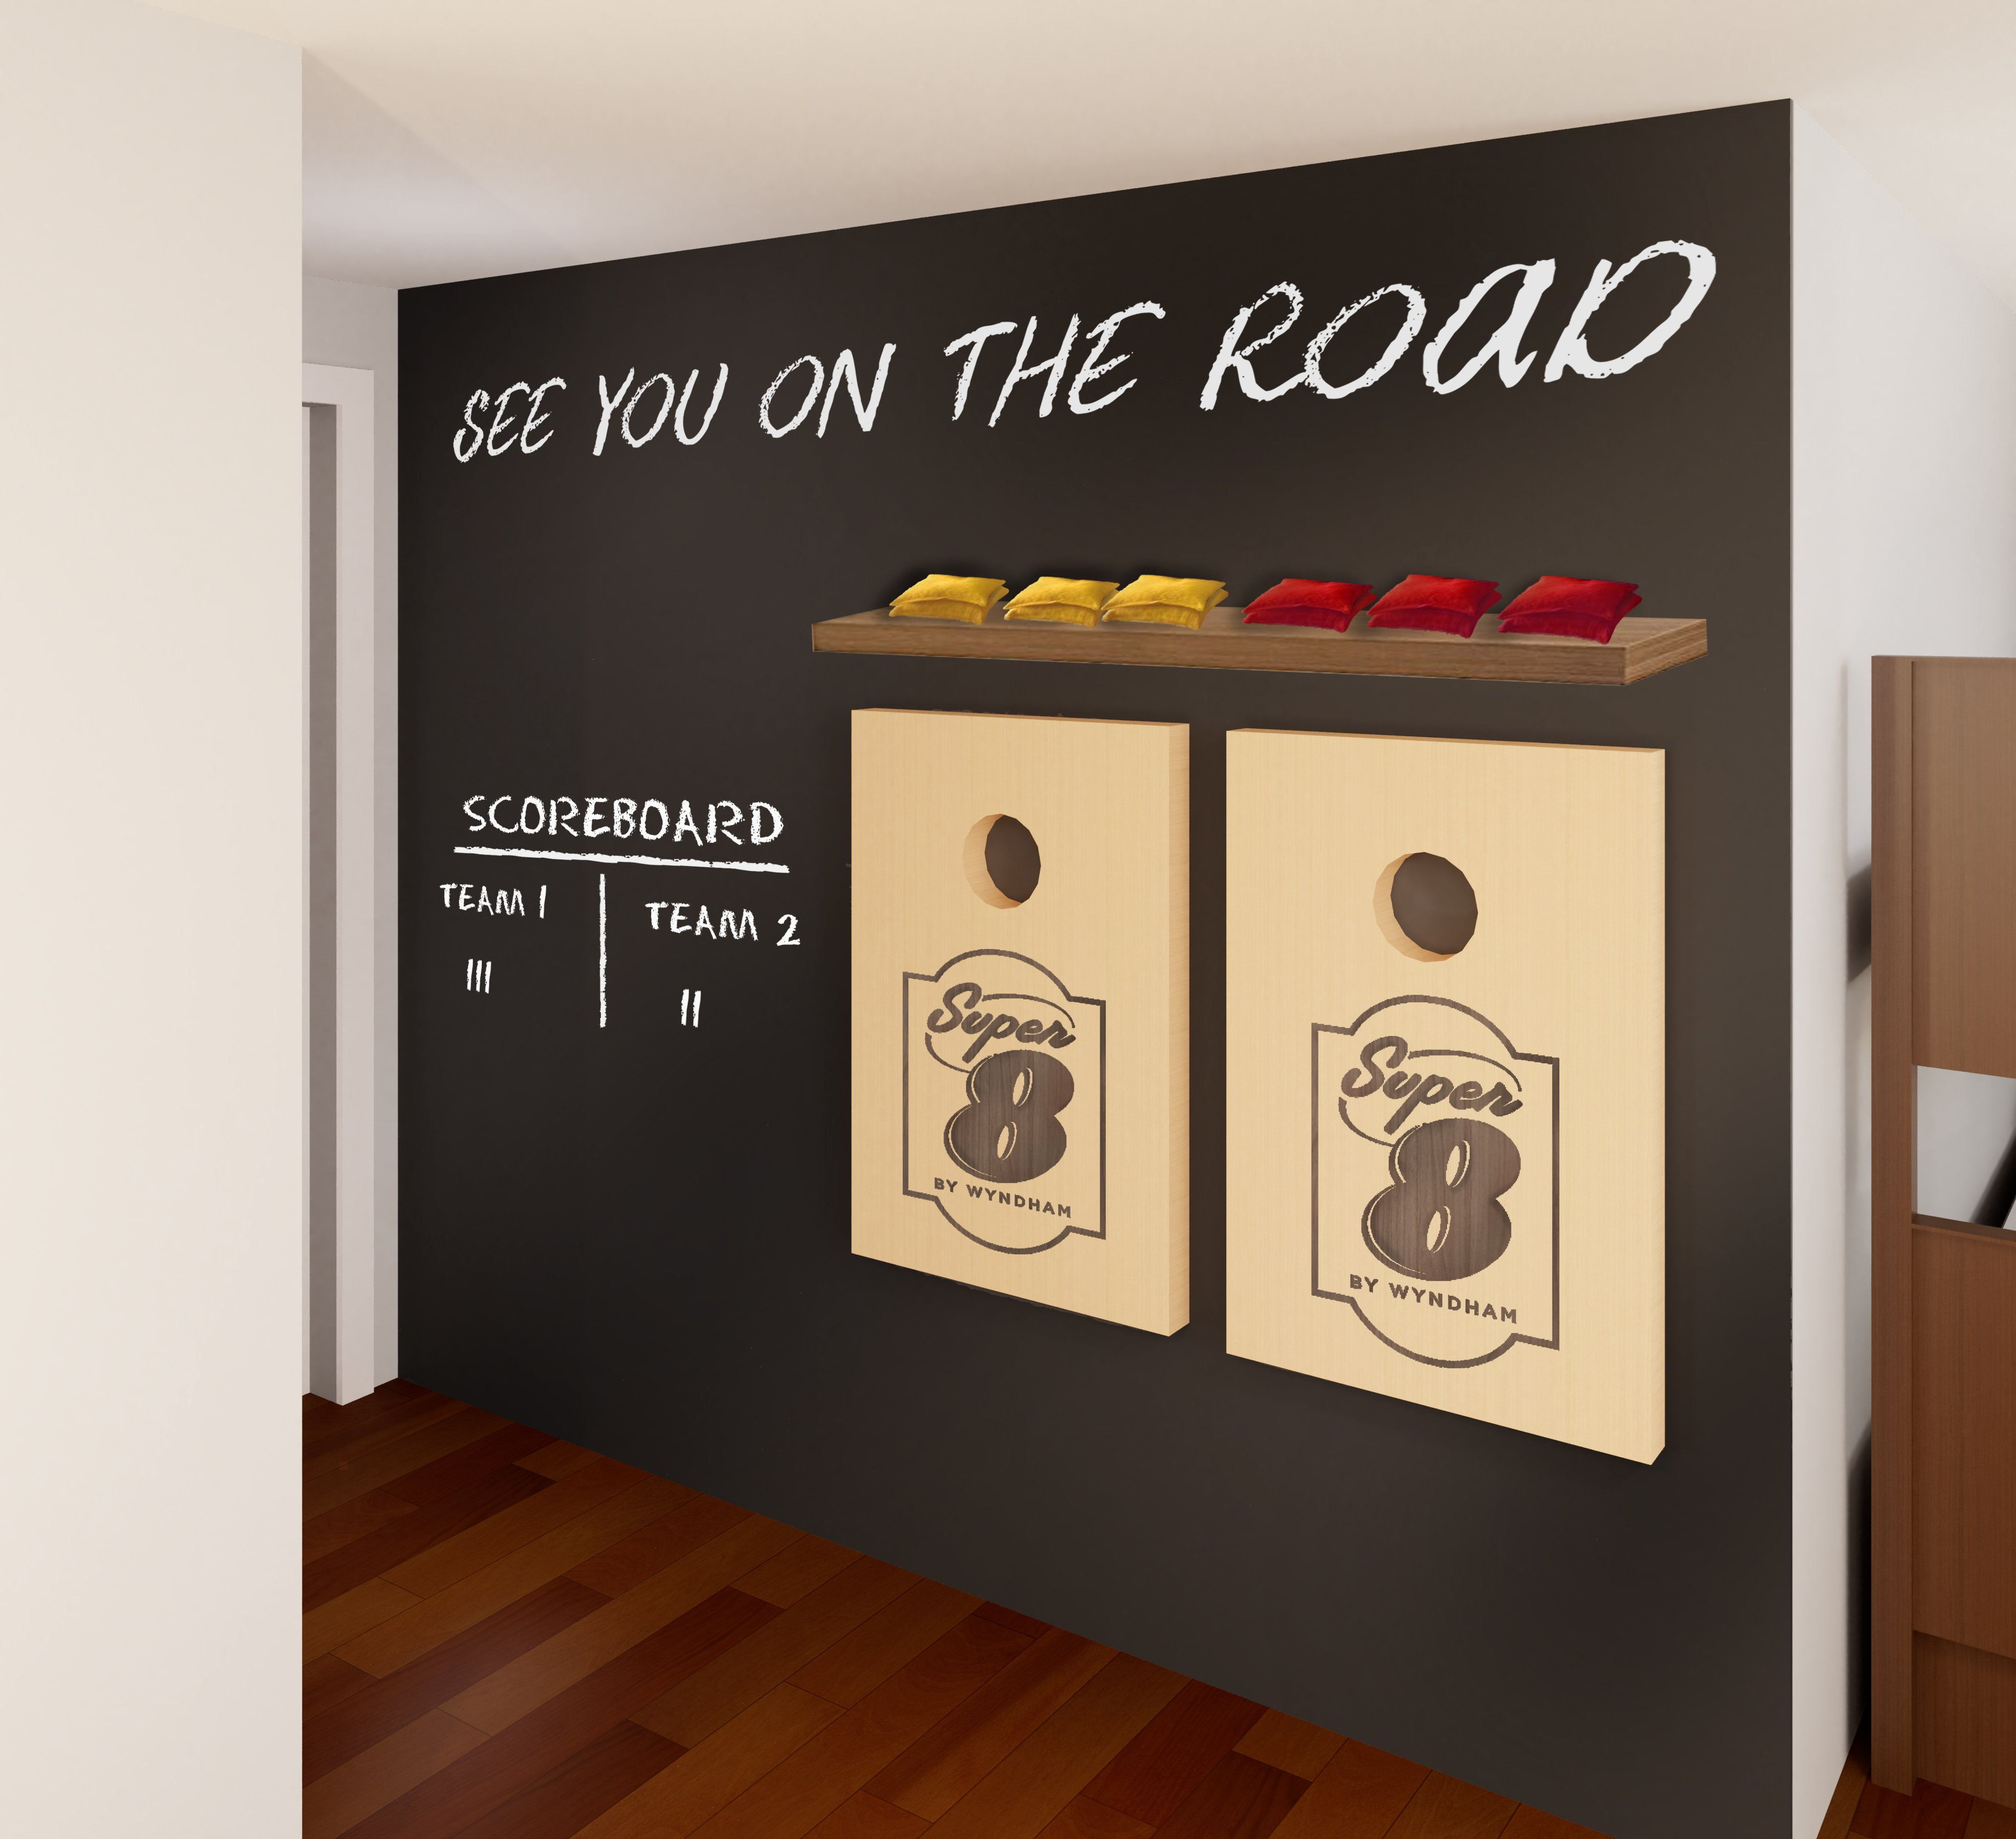 The rooms have a chalkboard entry wall for guests to write on.